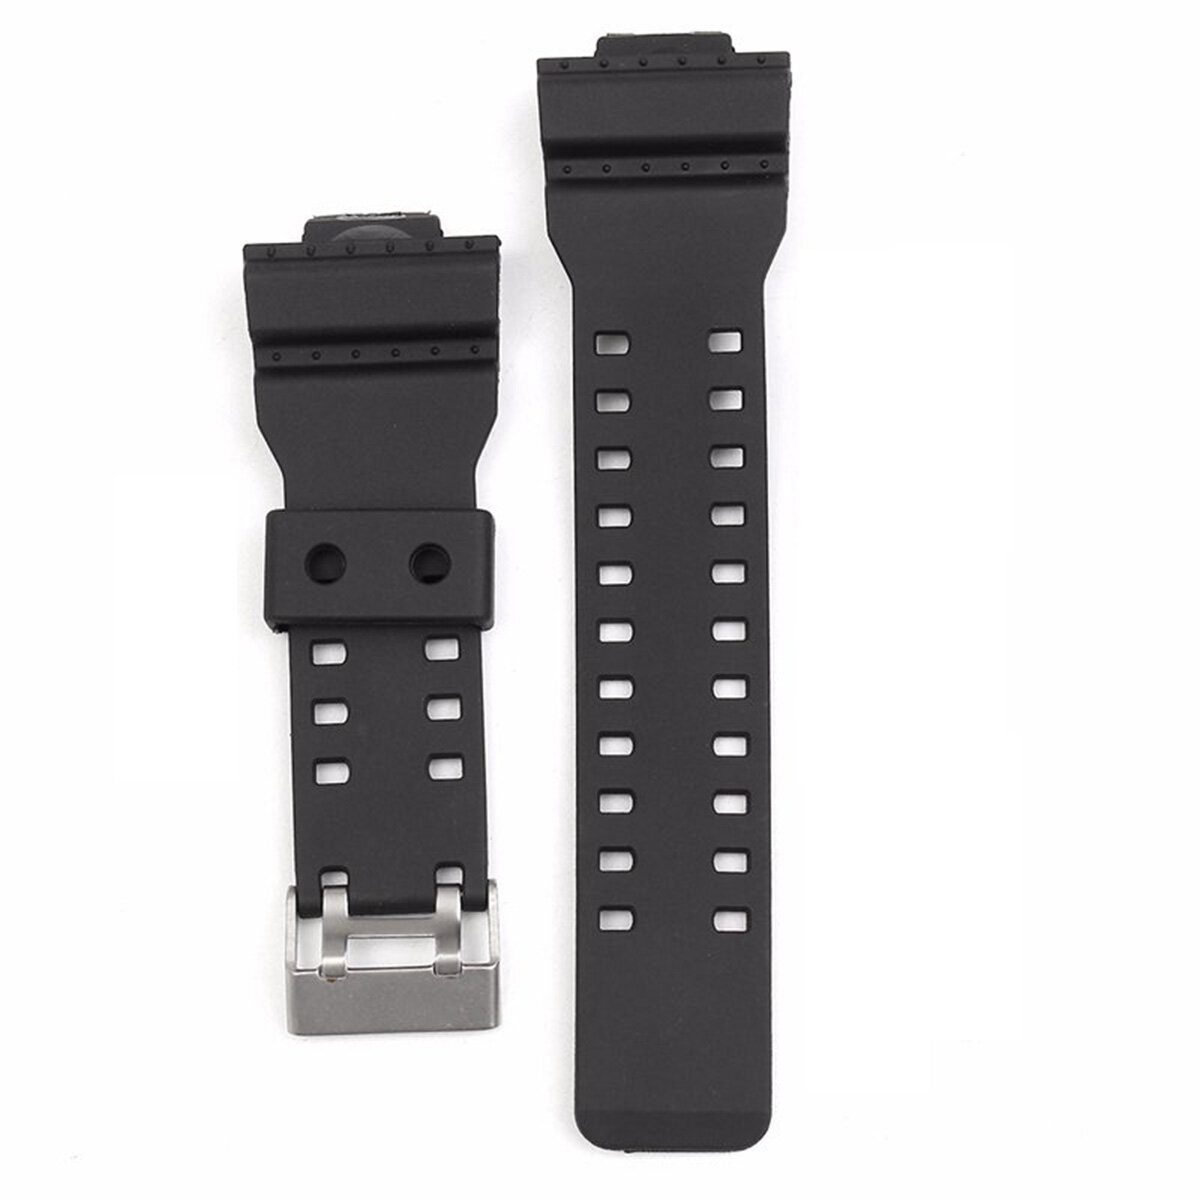 Watch Strap Band With Pins Fits For Casio G Shock 16mm Ga 100 G 8900 Gw 8900